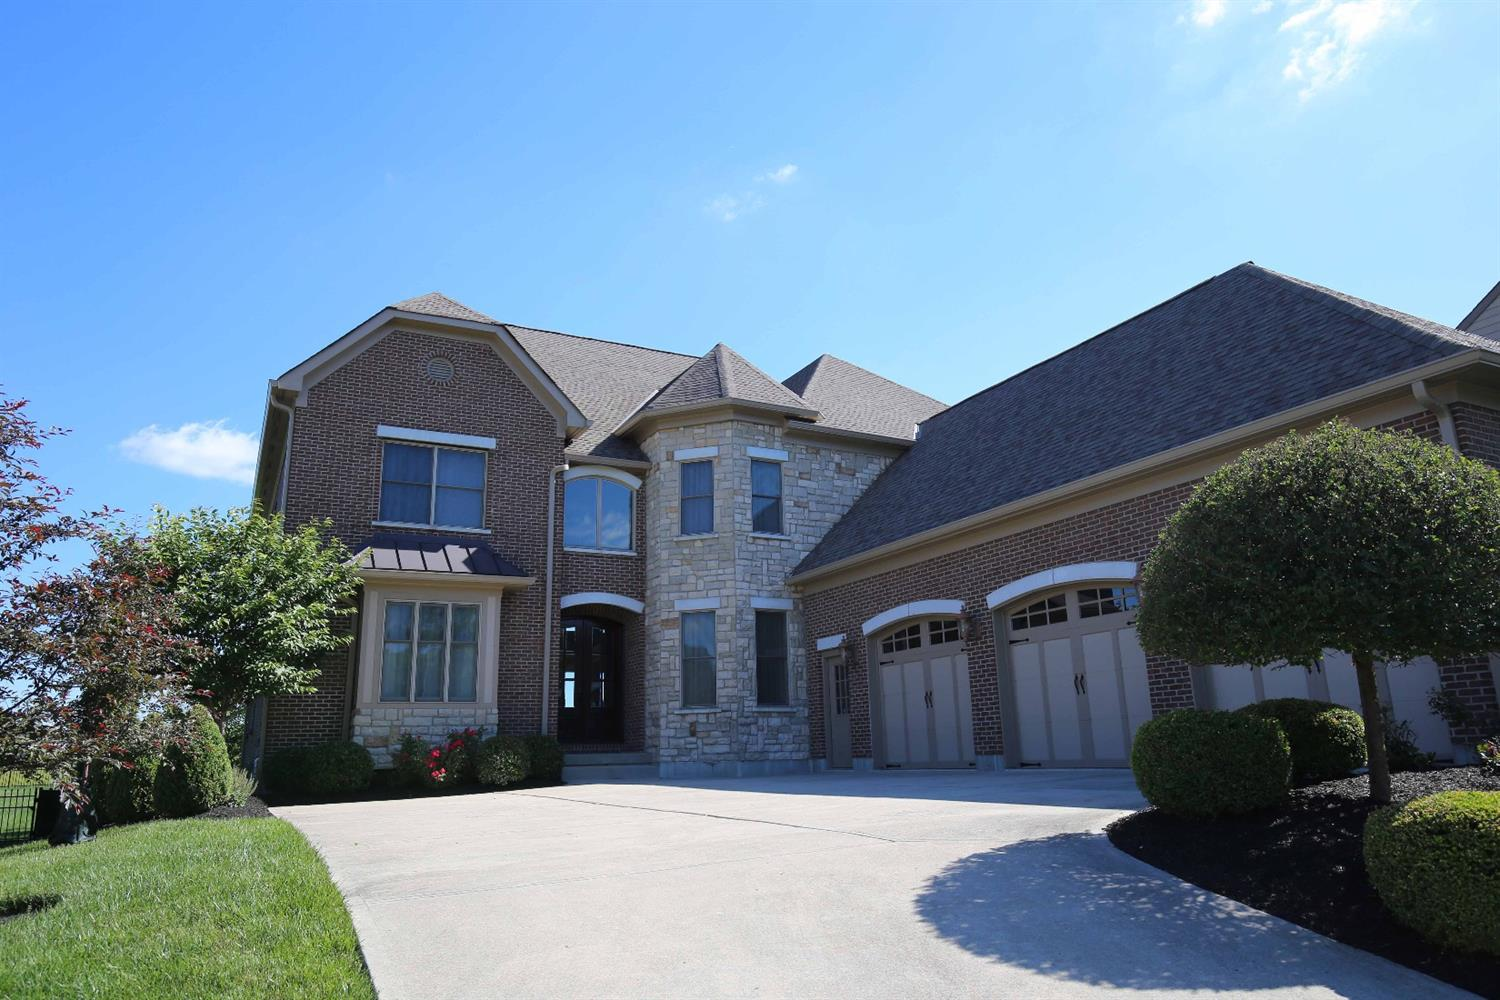 5130 Emerald View Dr Hamilton Twp., OH